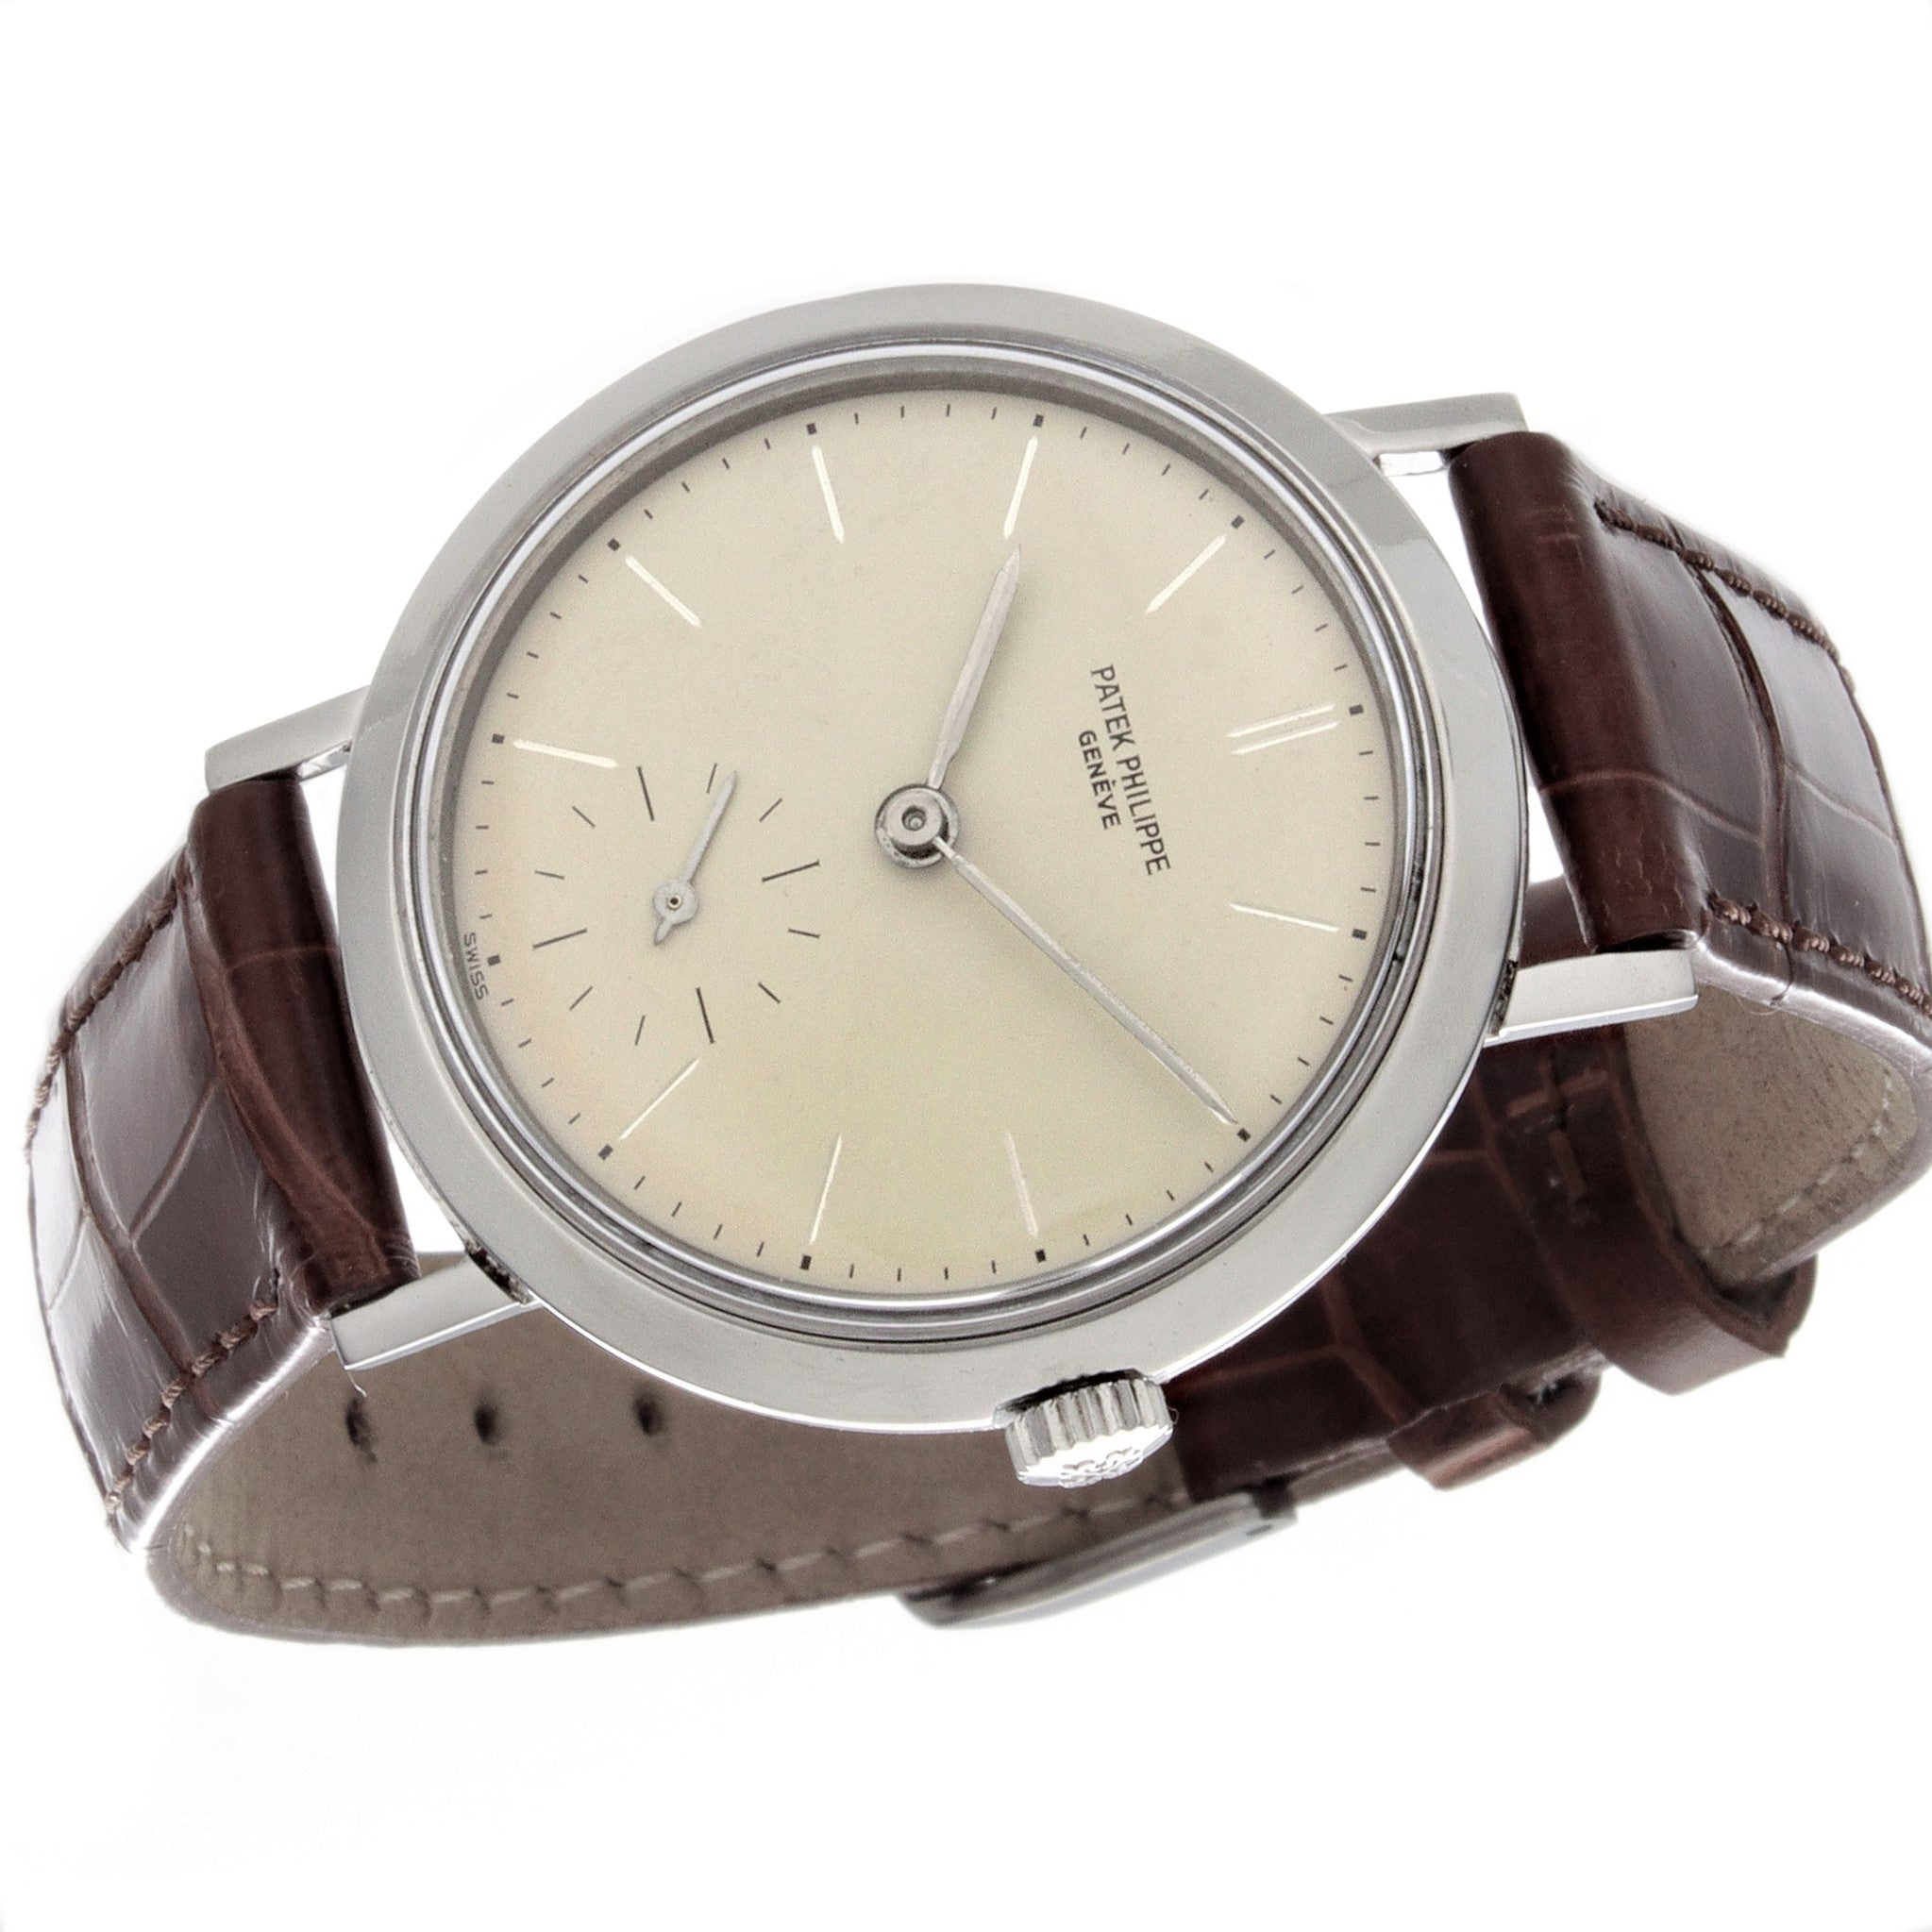 Patek Philippe 3419A  Vintage Stainless Steel Calatrava with a Amagnetic Circa 1962